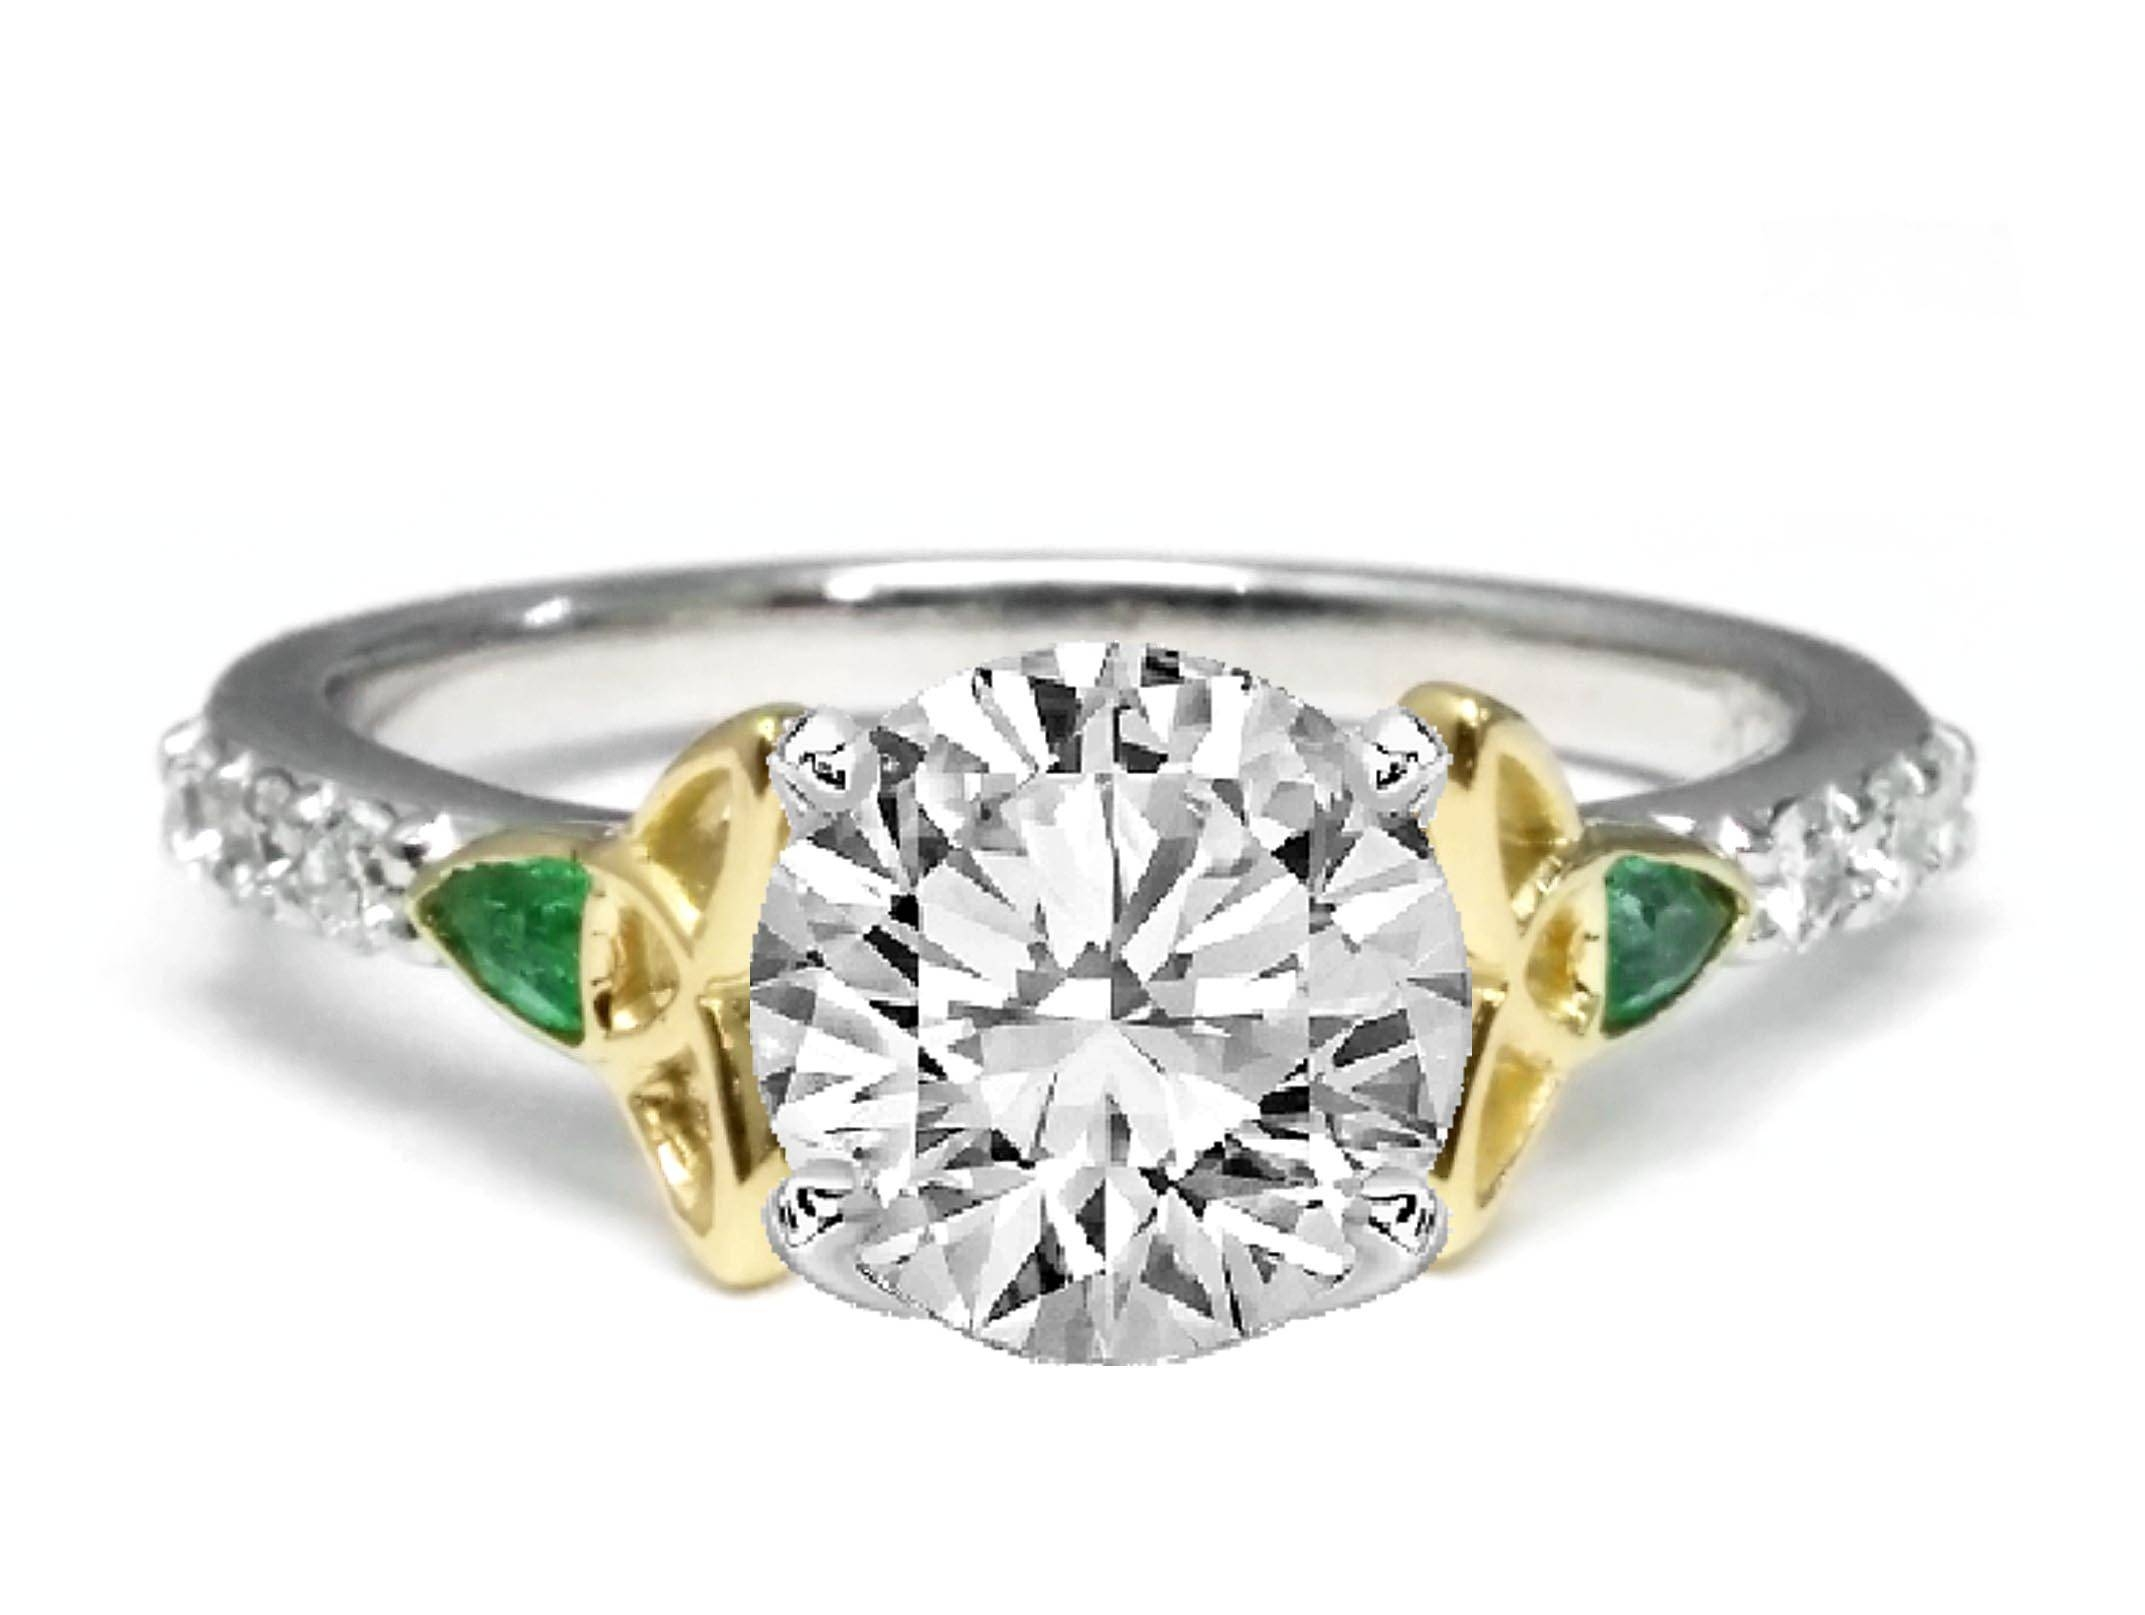 Celtic – Engagement Rings From Mdc Diamonds Nyc Within Celtic Engagement Rings Canada (View 5 of 15)